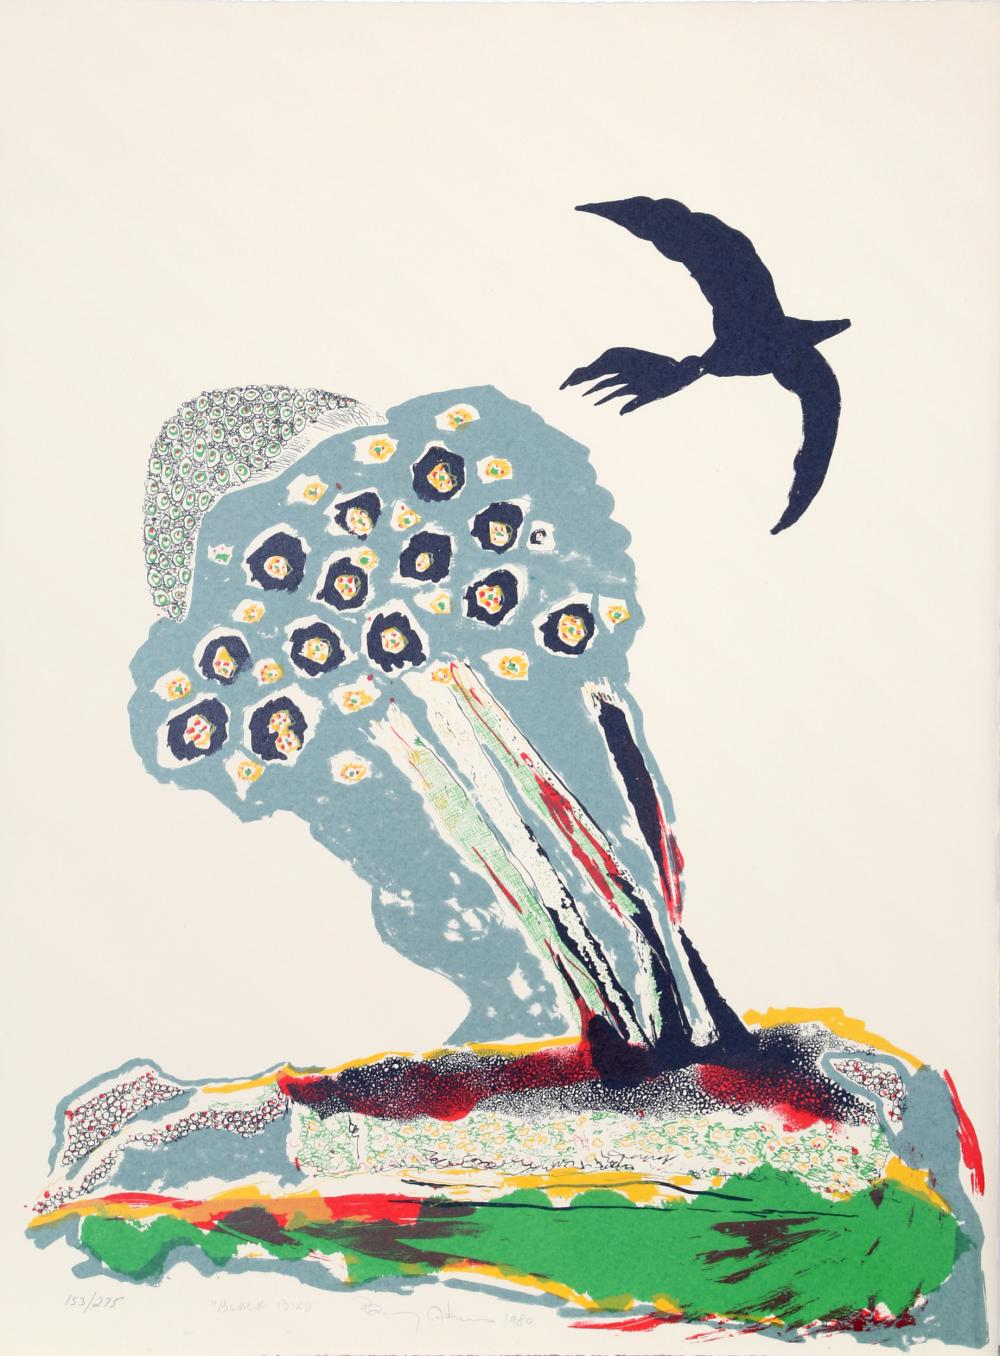 Benny Andrews, Black Bird, Lithograph